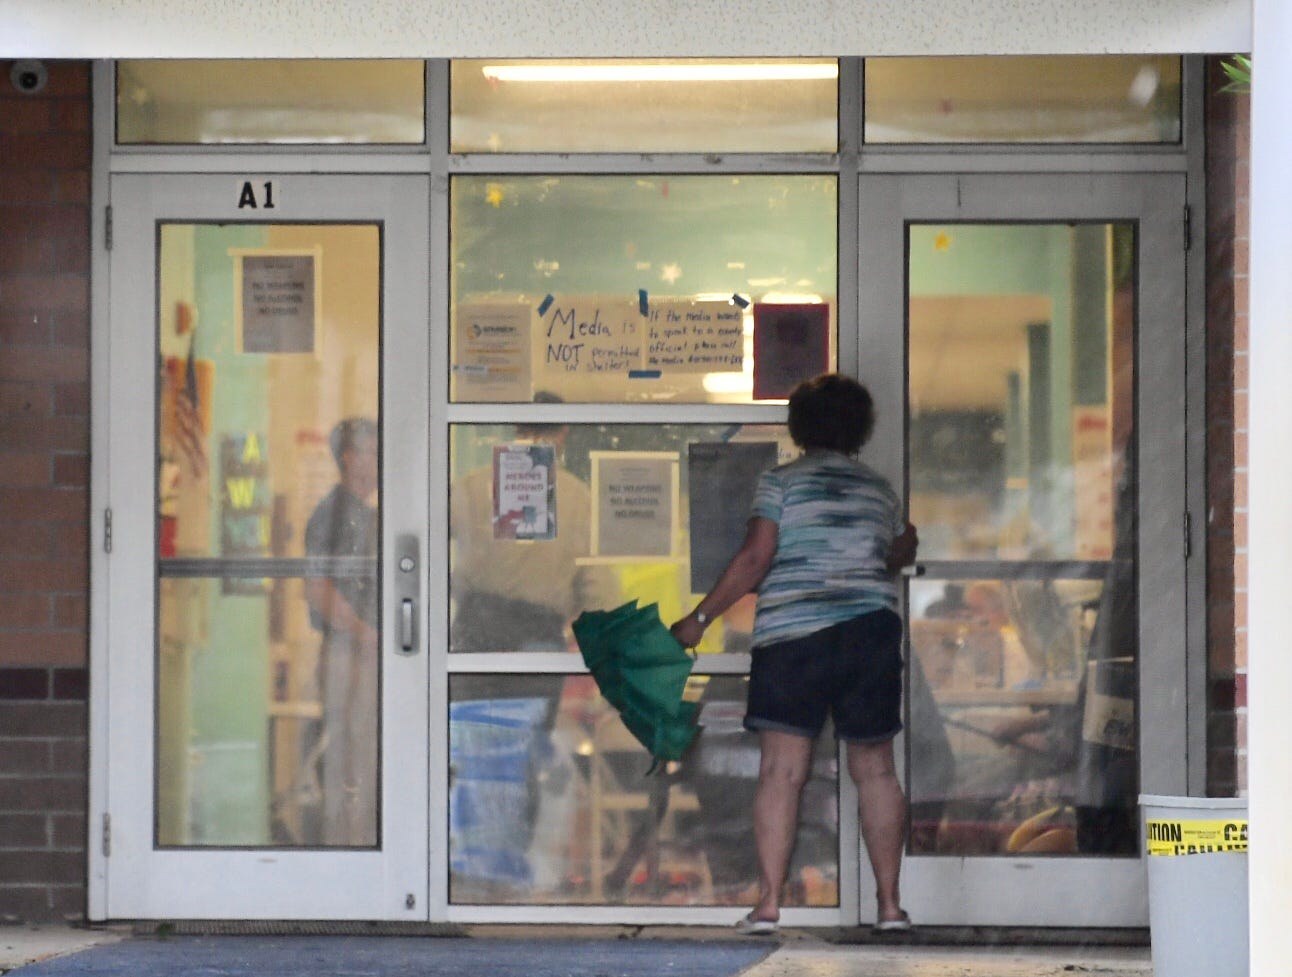 A woman walks into a shelter at Codington Elementary School in Wilmington N.C. on Saturday, Sept. 15, 2018.